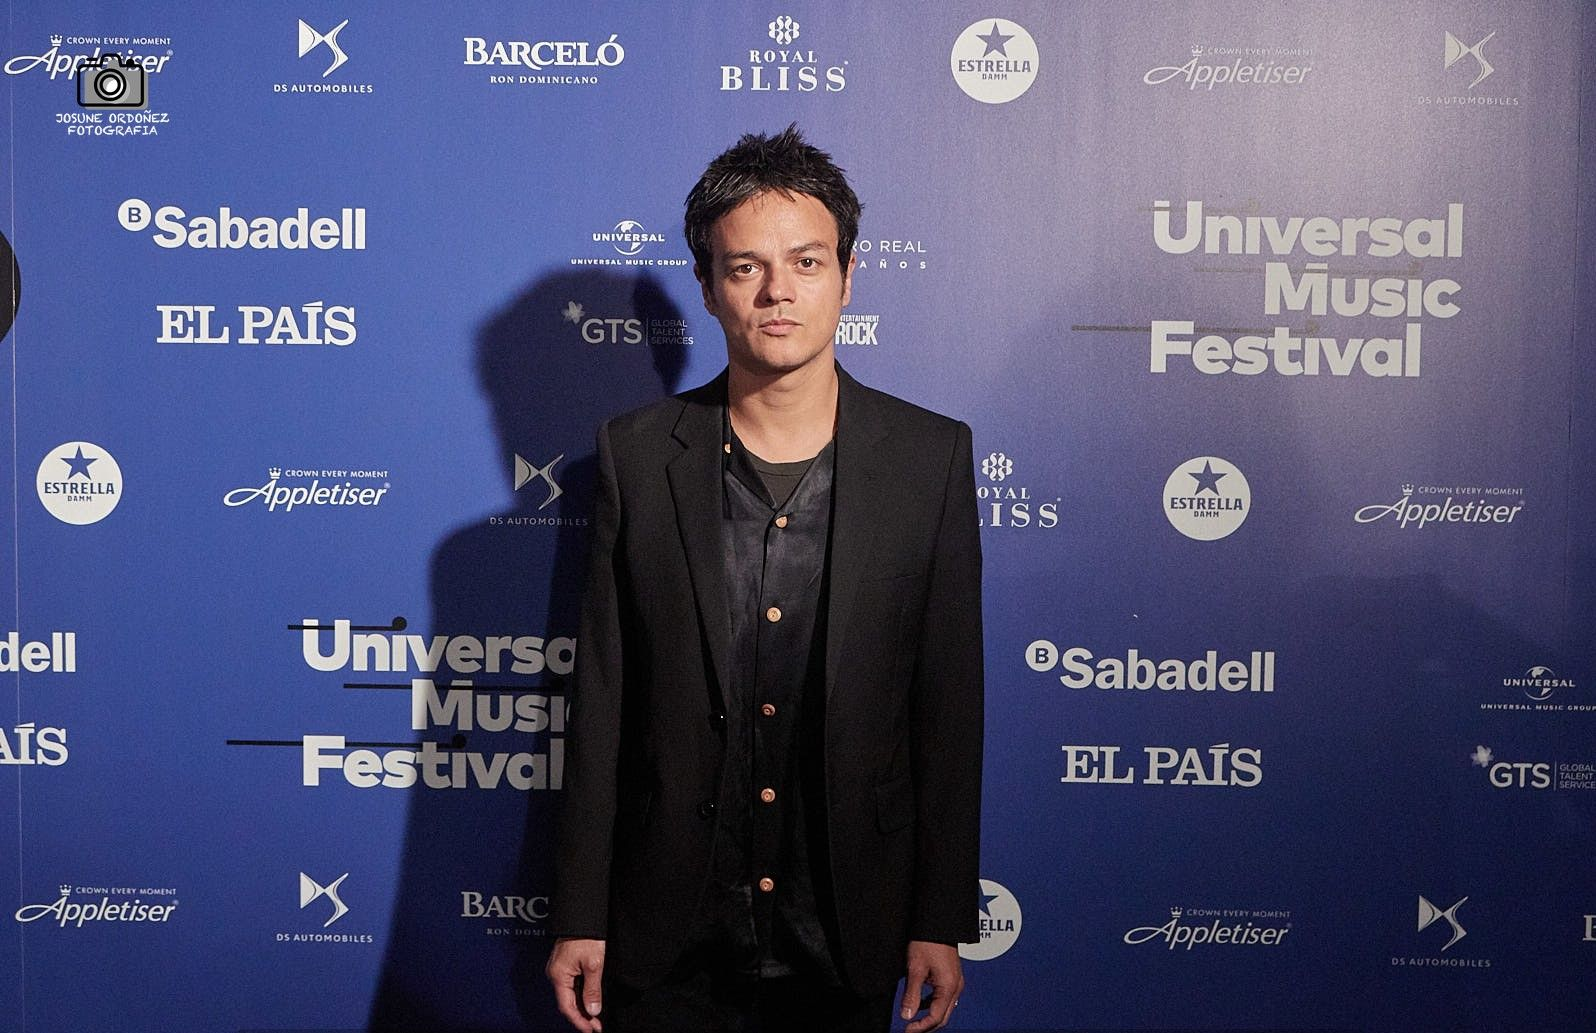 JAMIE CULLUM SPEAKS US OF HIS NEW ALBUM AND HIS CONCERT IN MADRID